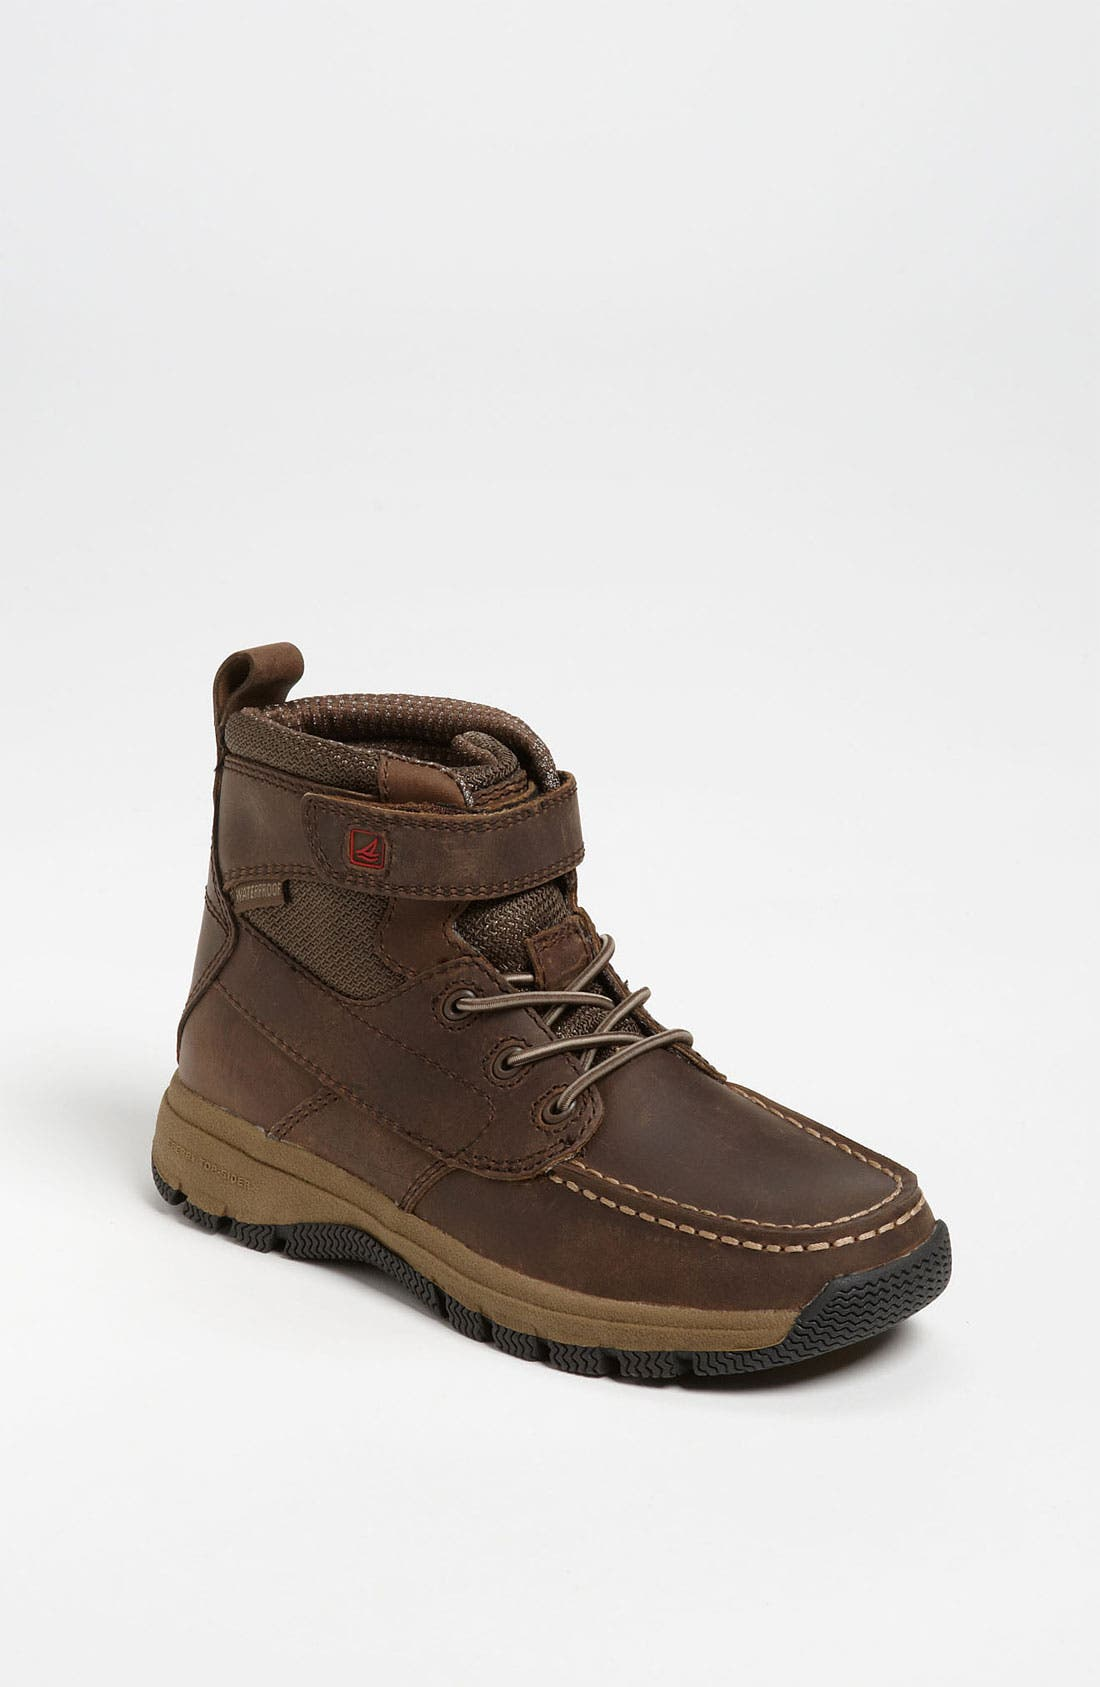 Alternate Image 1 Selected - Sperry Top-Sider® Kids 'Cascade' Boot (Walker, Toddler, Little Kid & Big Kid)